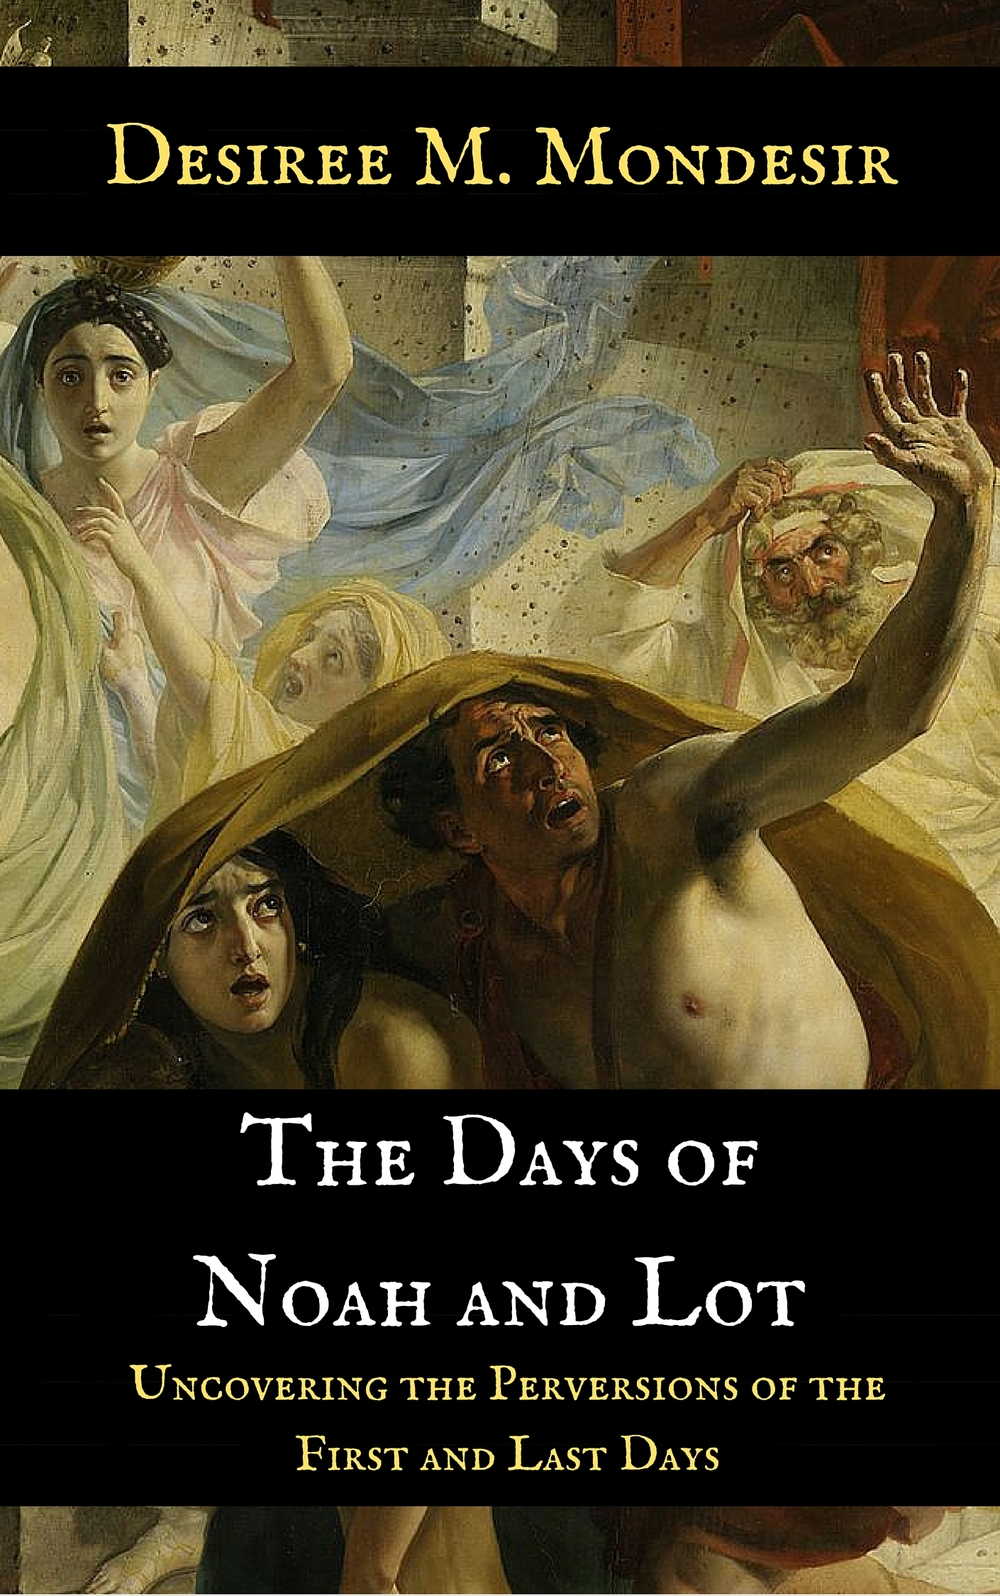 BUY THE DAYS OF NOAH AND LOT TODAY!